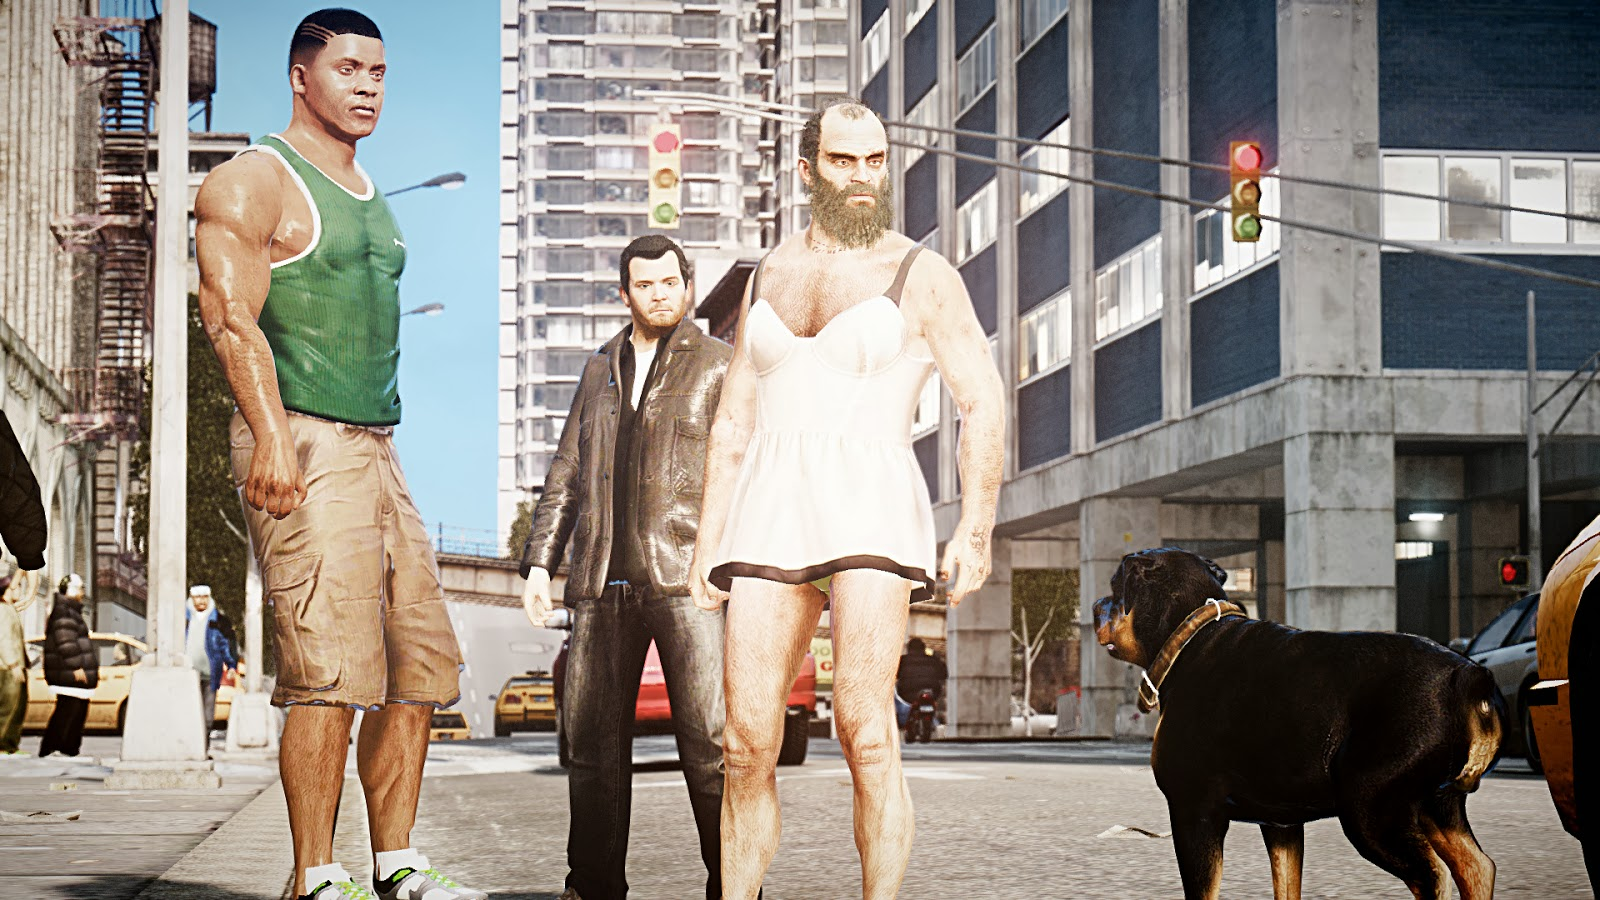 Gta 4 Characters In Real Life